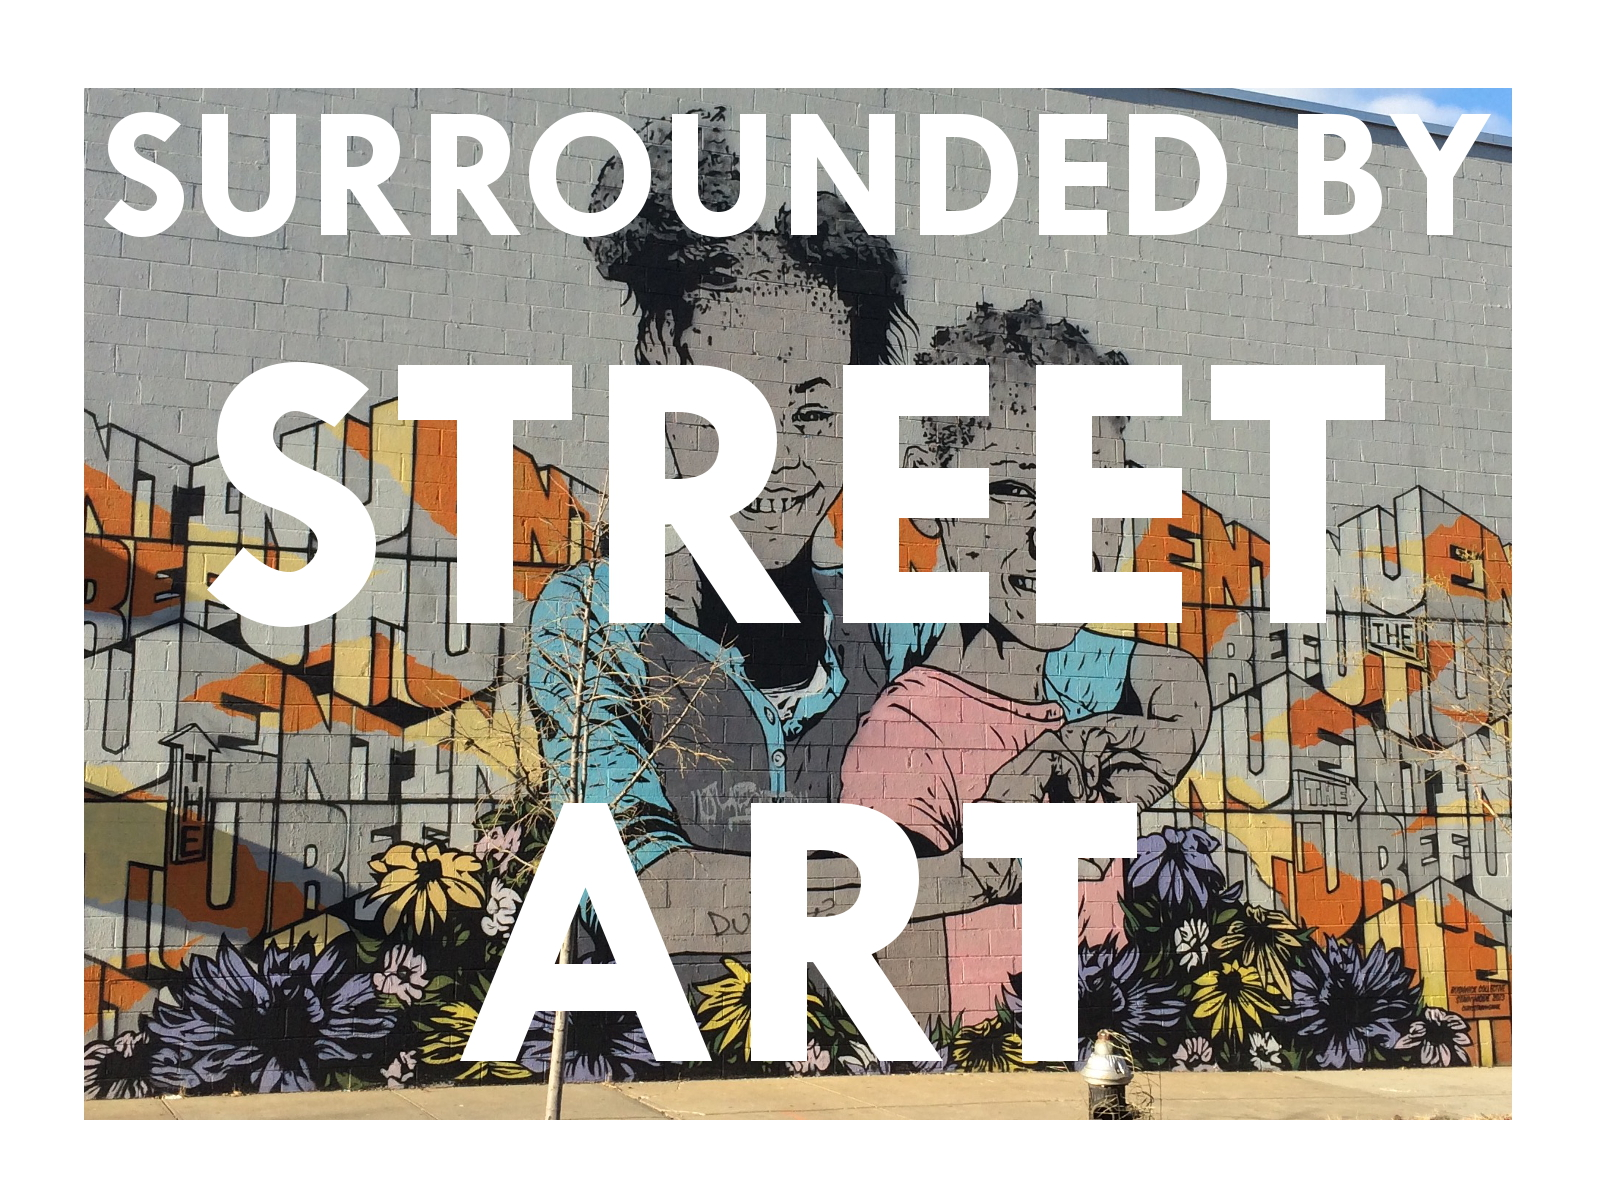 Half-day tours of some of Brooklyn's best street art